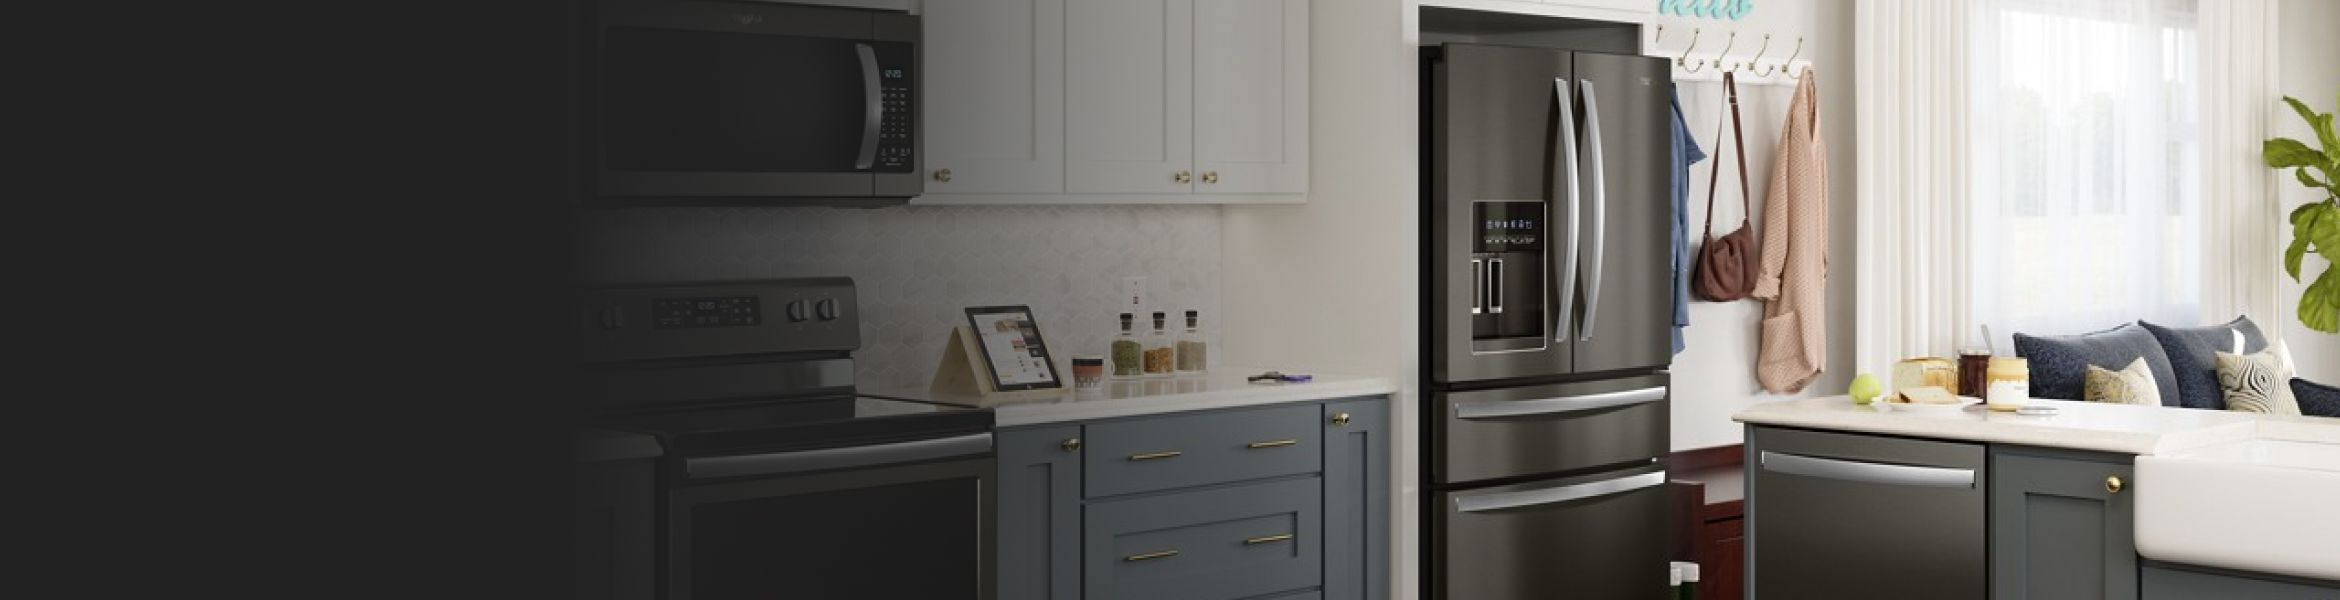 French door refrigerator in kitchen with blue cabinets